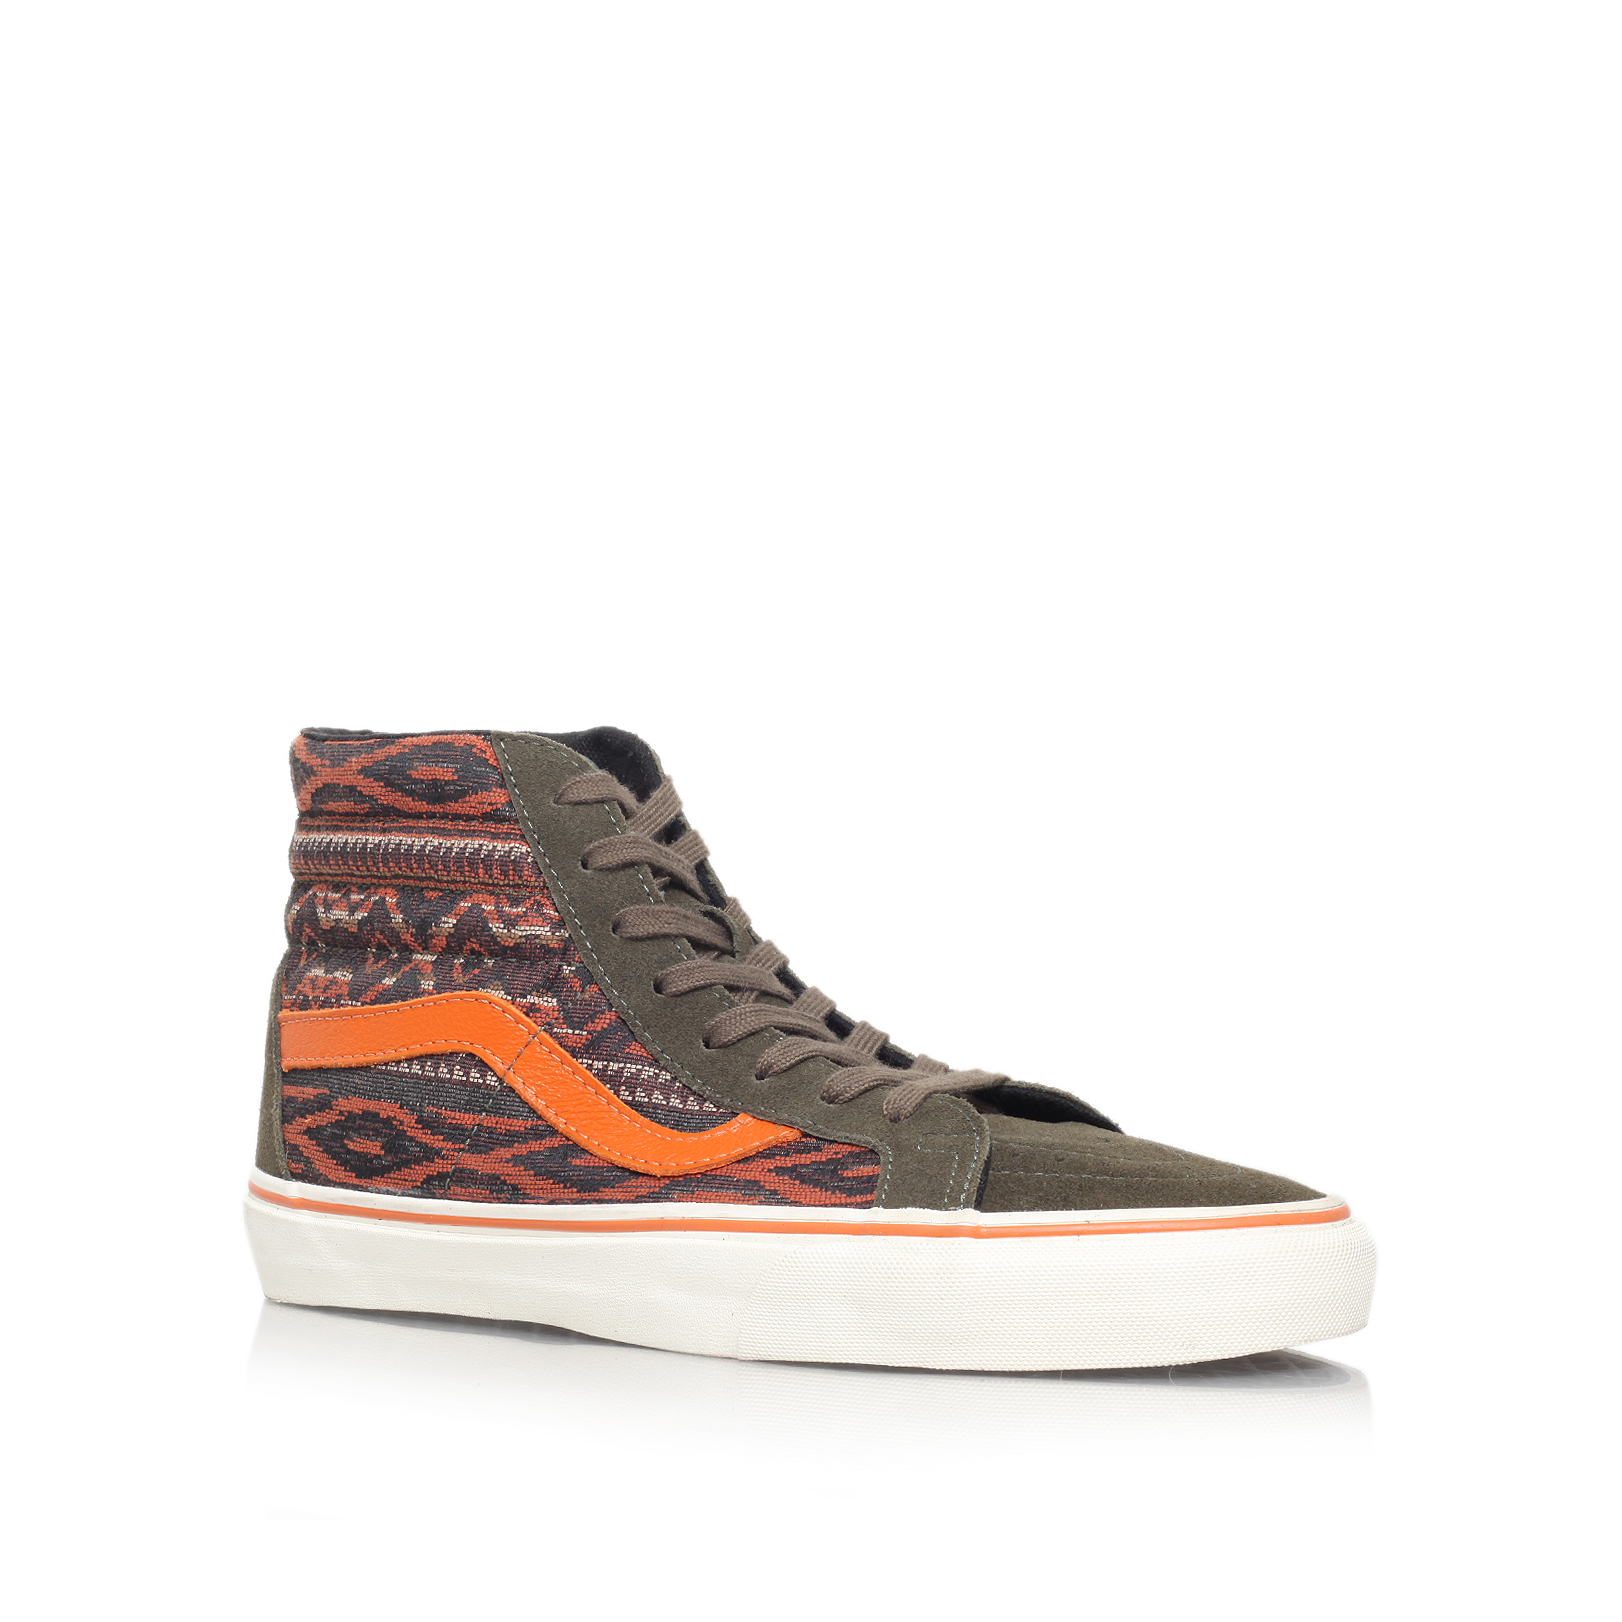 SK8-HI RE ISSUE INCA CA